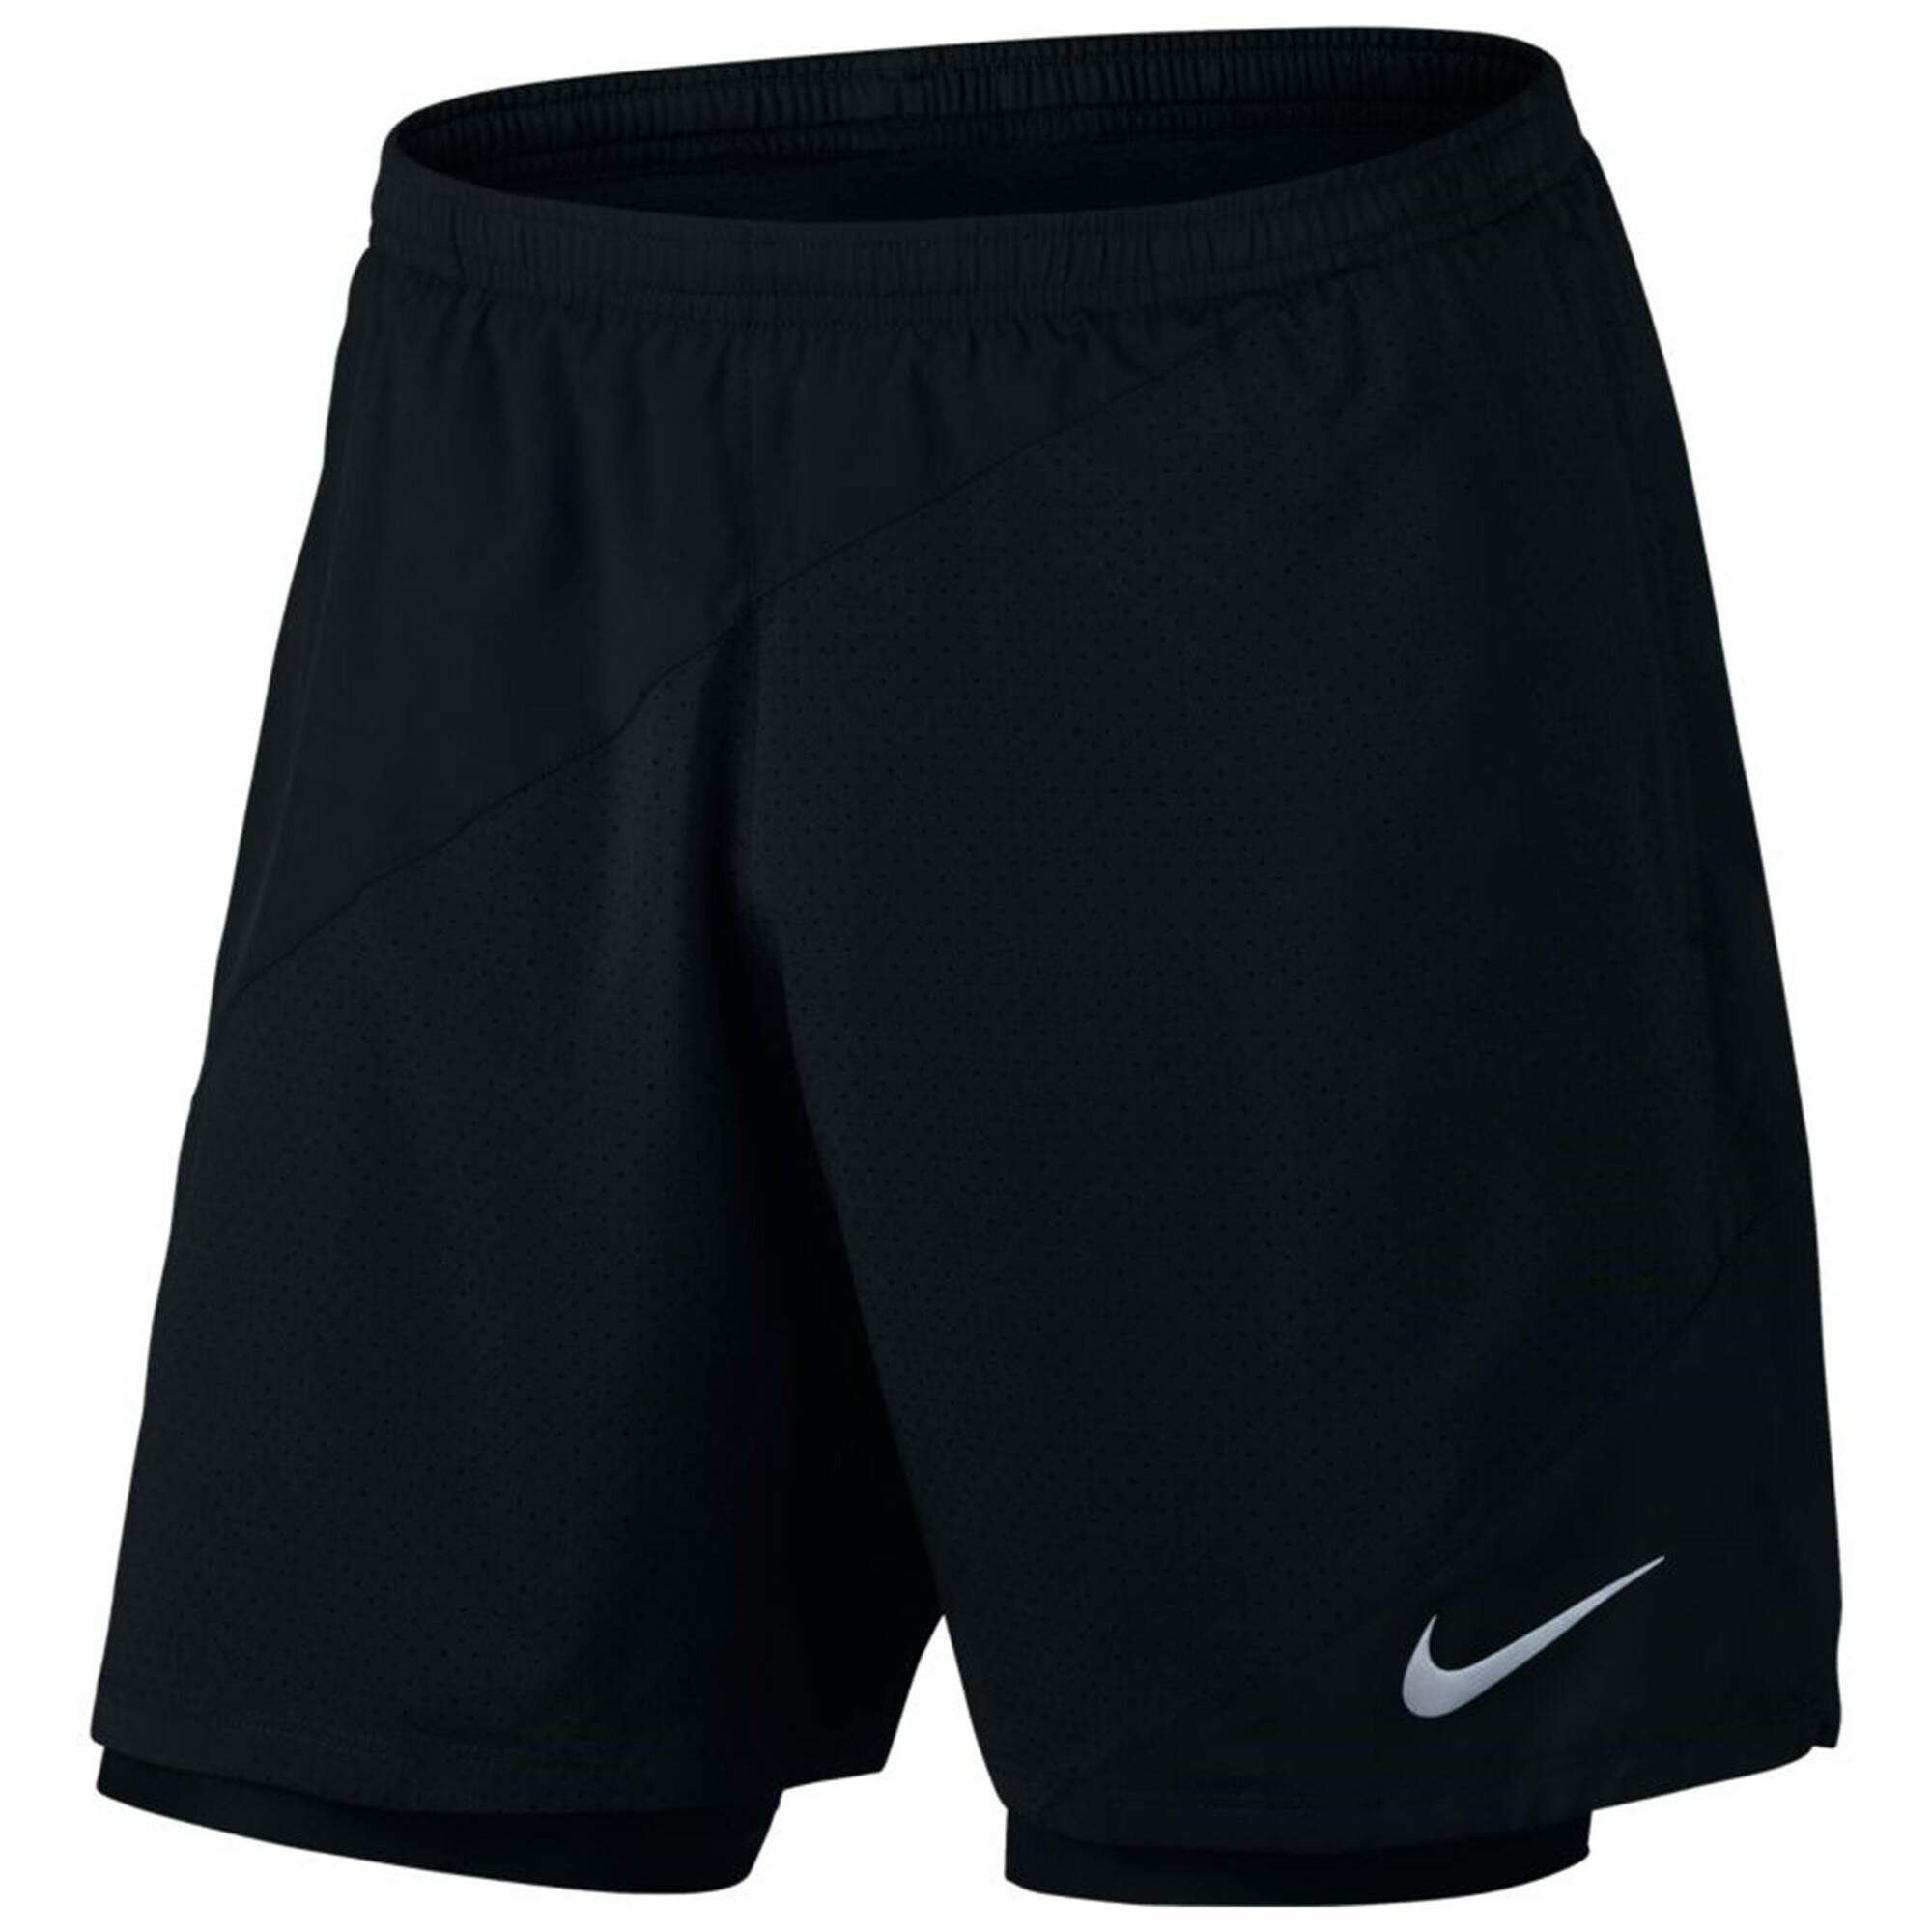 Shorts com bermuda Nike 2 In 1 Full Flex